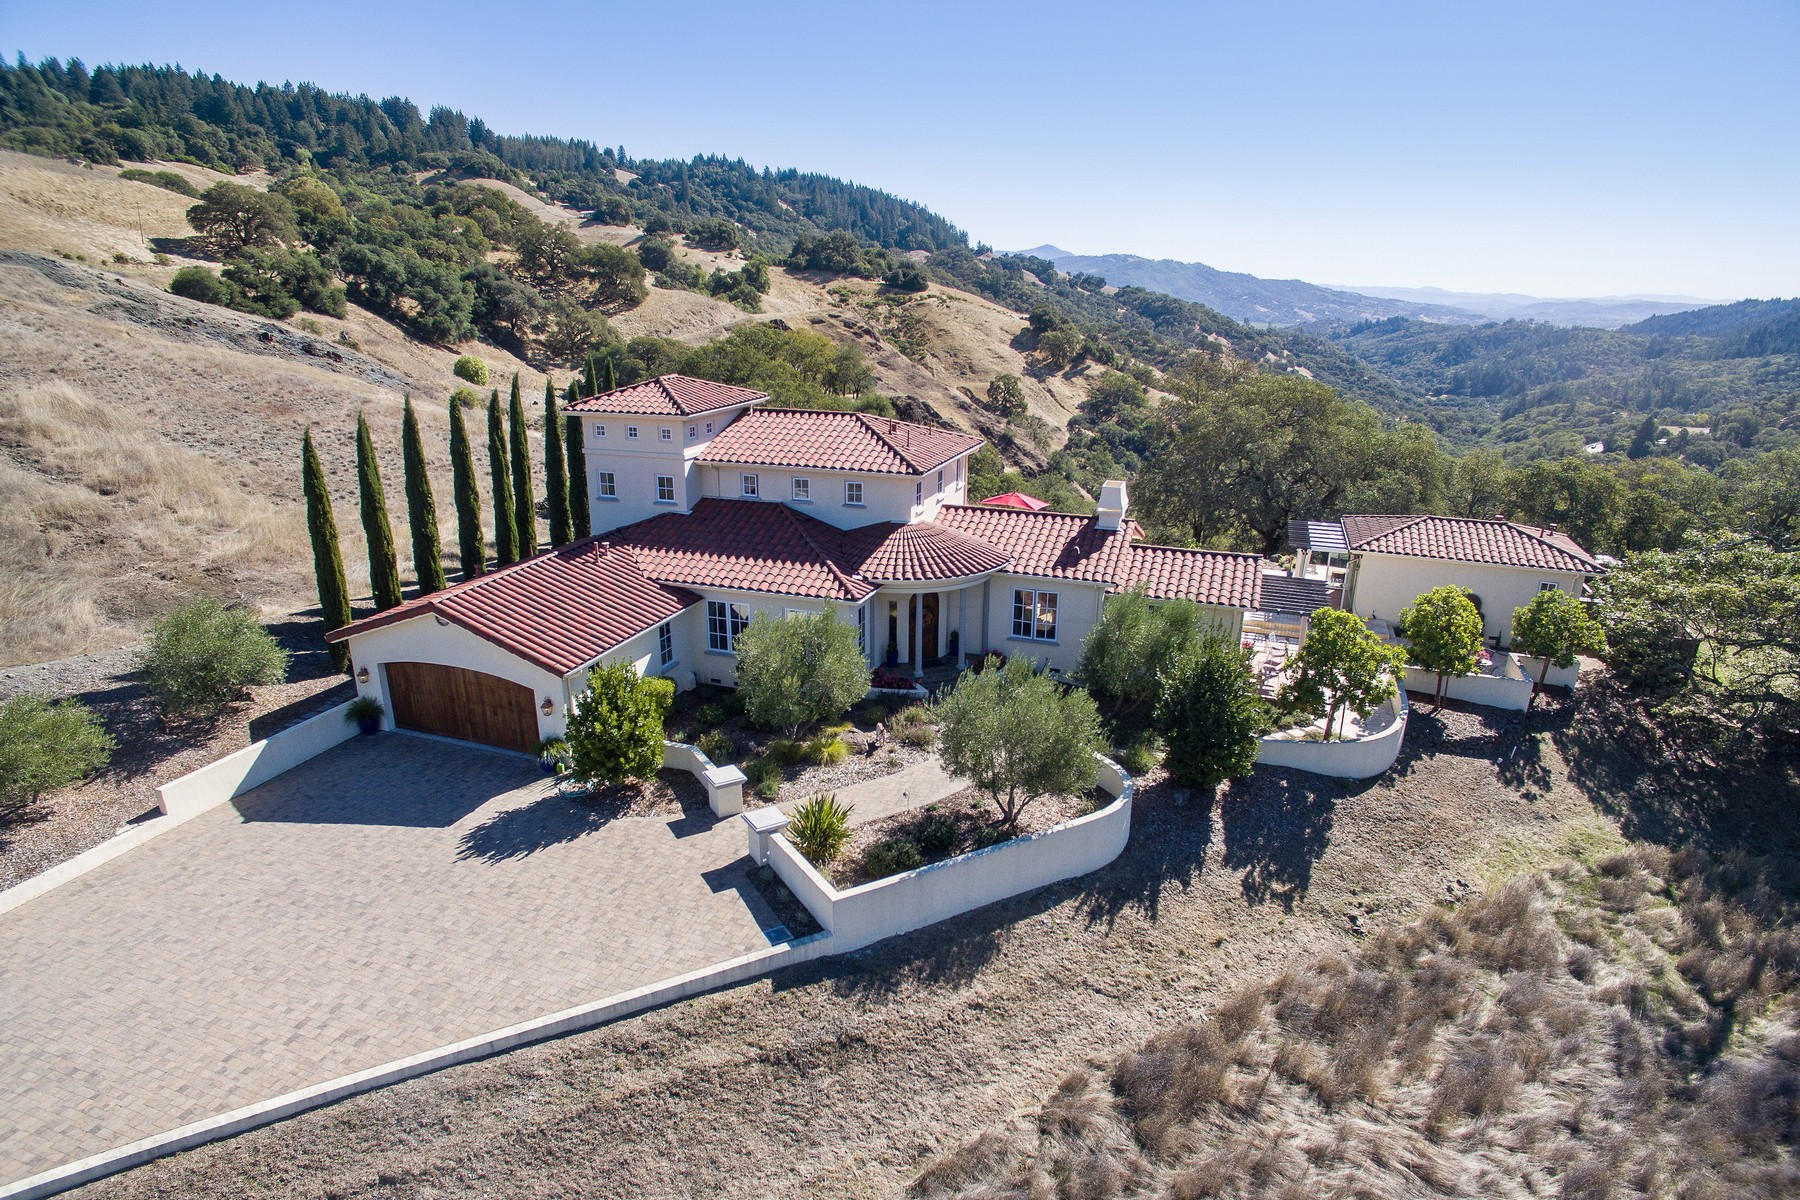 Single Family Homes for Sale at Cloverdale Heaven 34940 Highway 128 Cloverdale, California 95425 United States